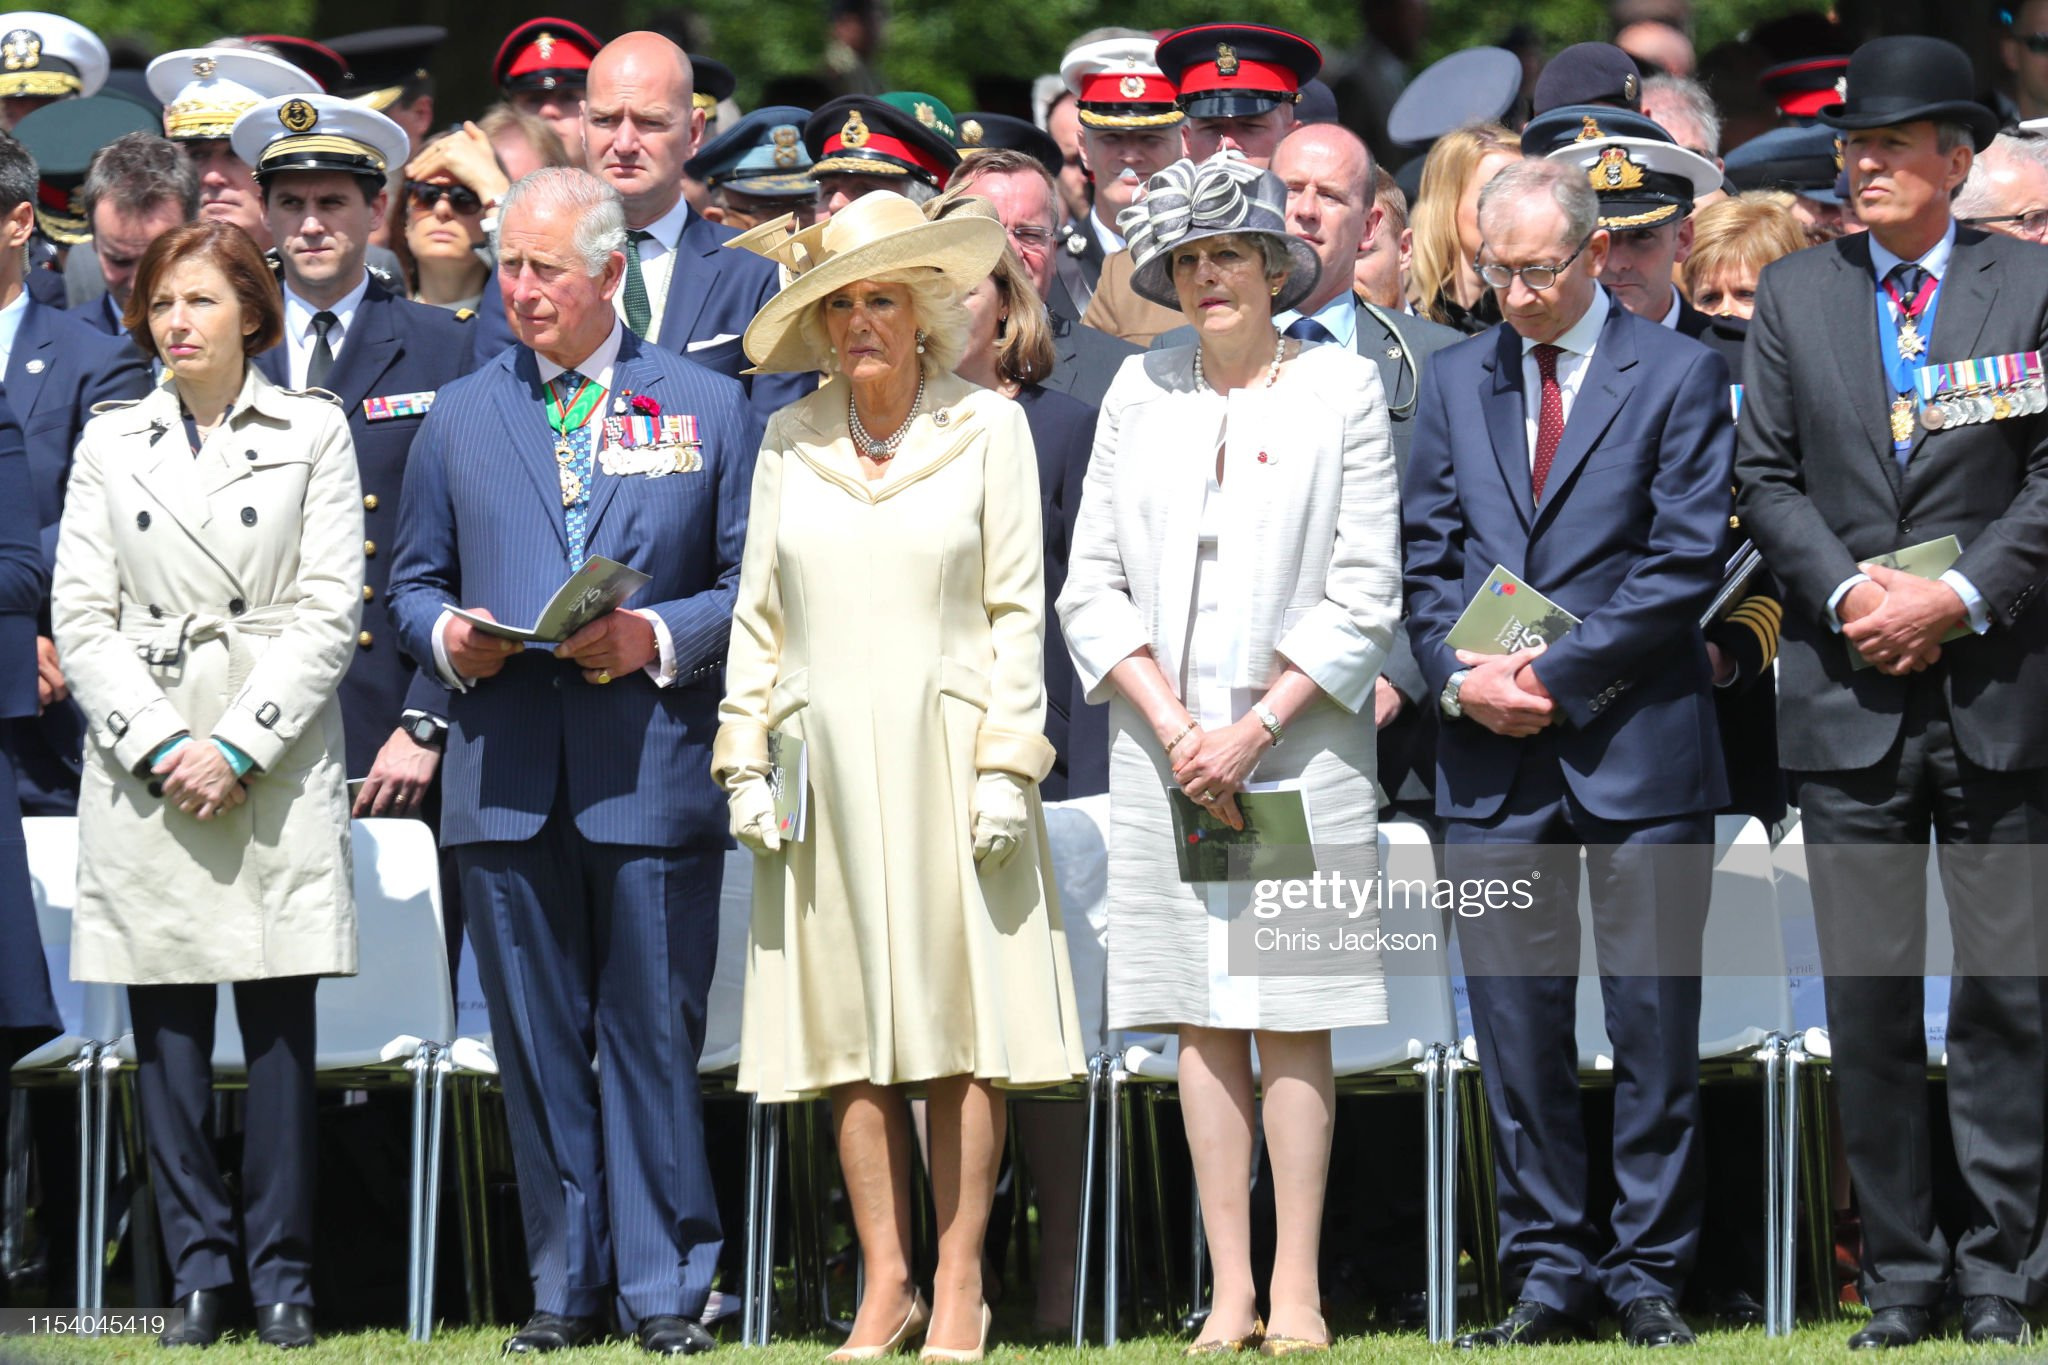 prince-charles-prince-of-wales-camilla-duchess-of-cornwall-and-prime-picture-id1154045419